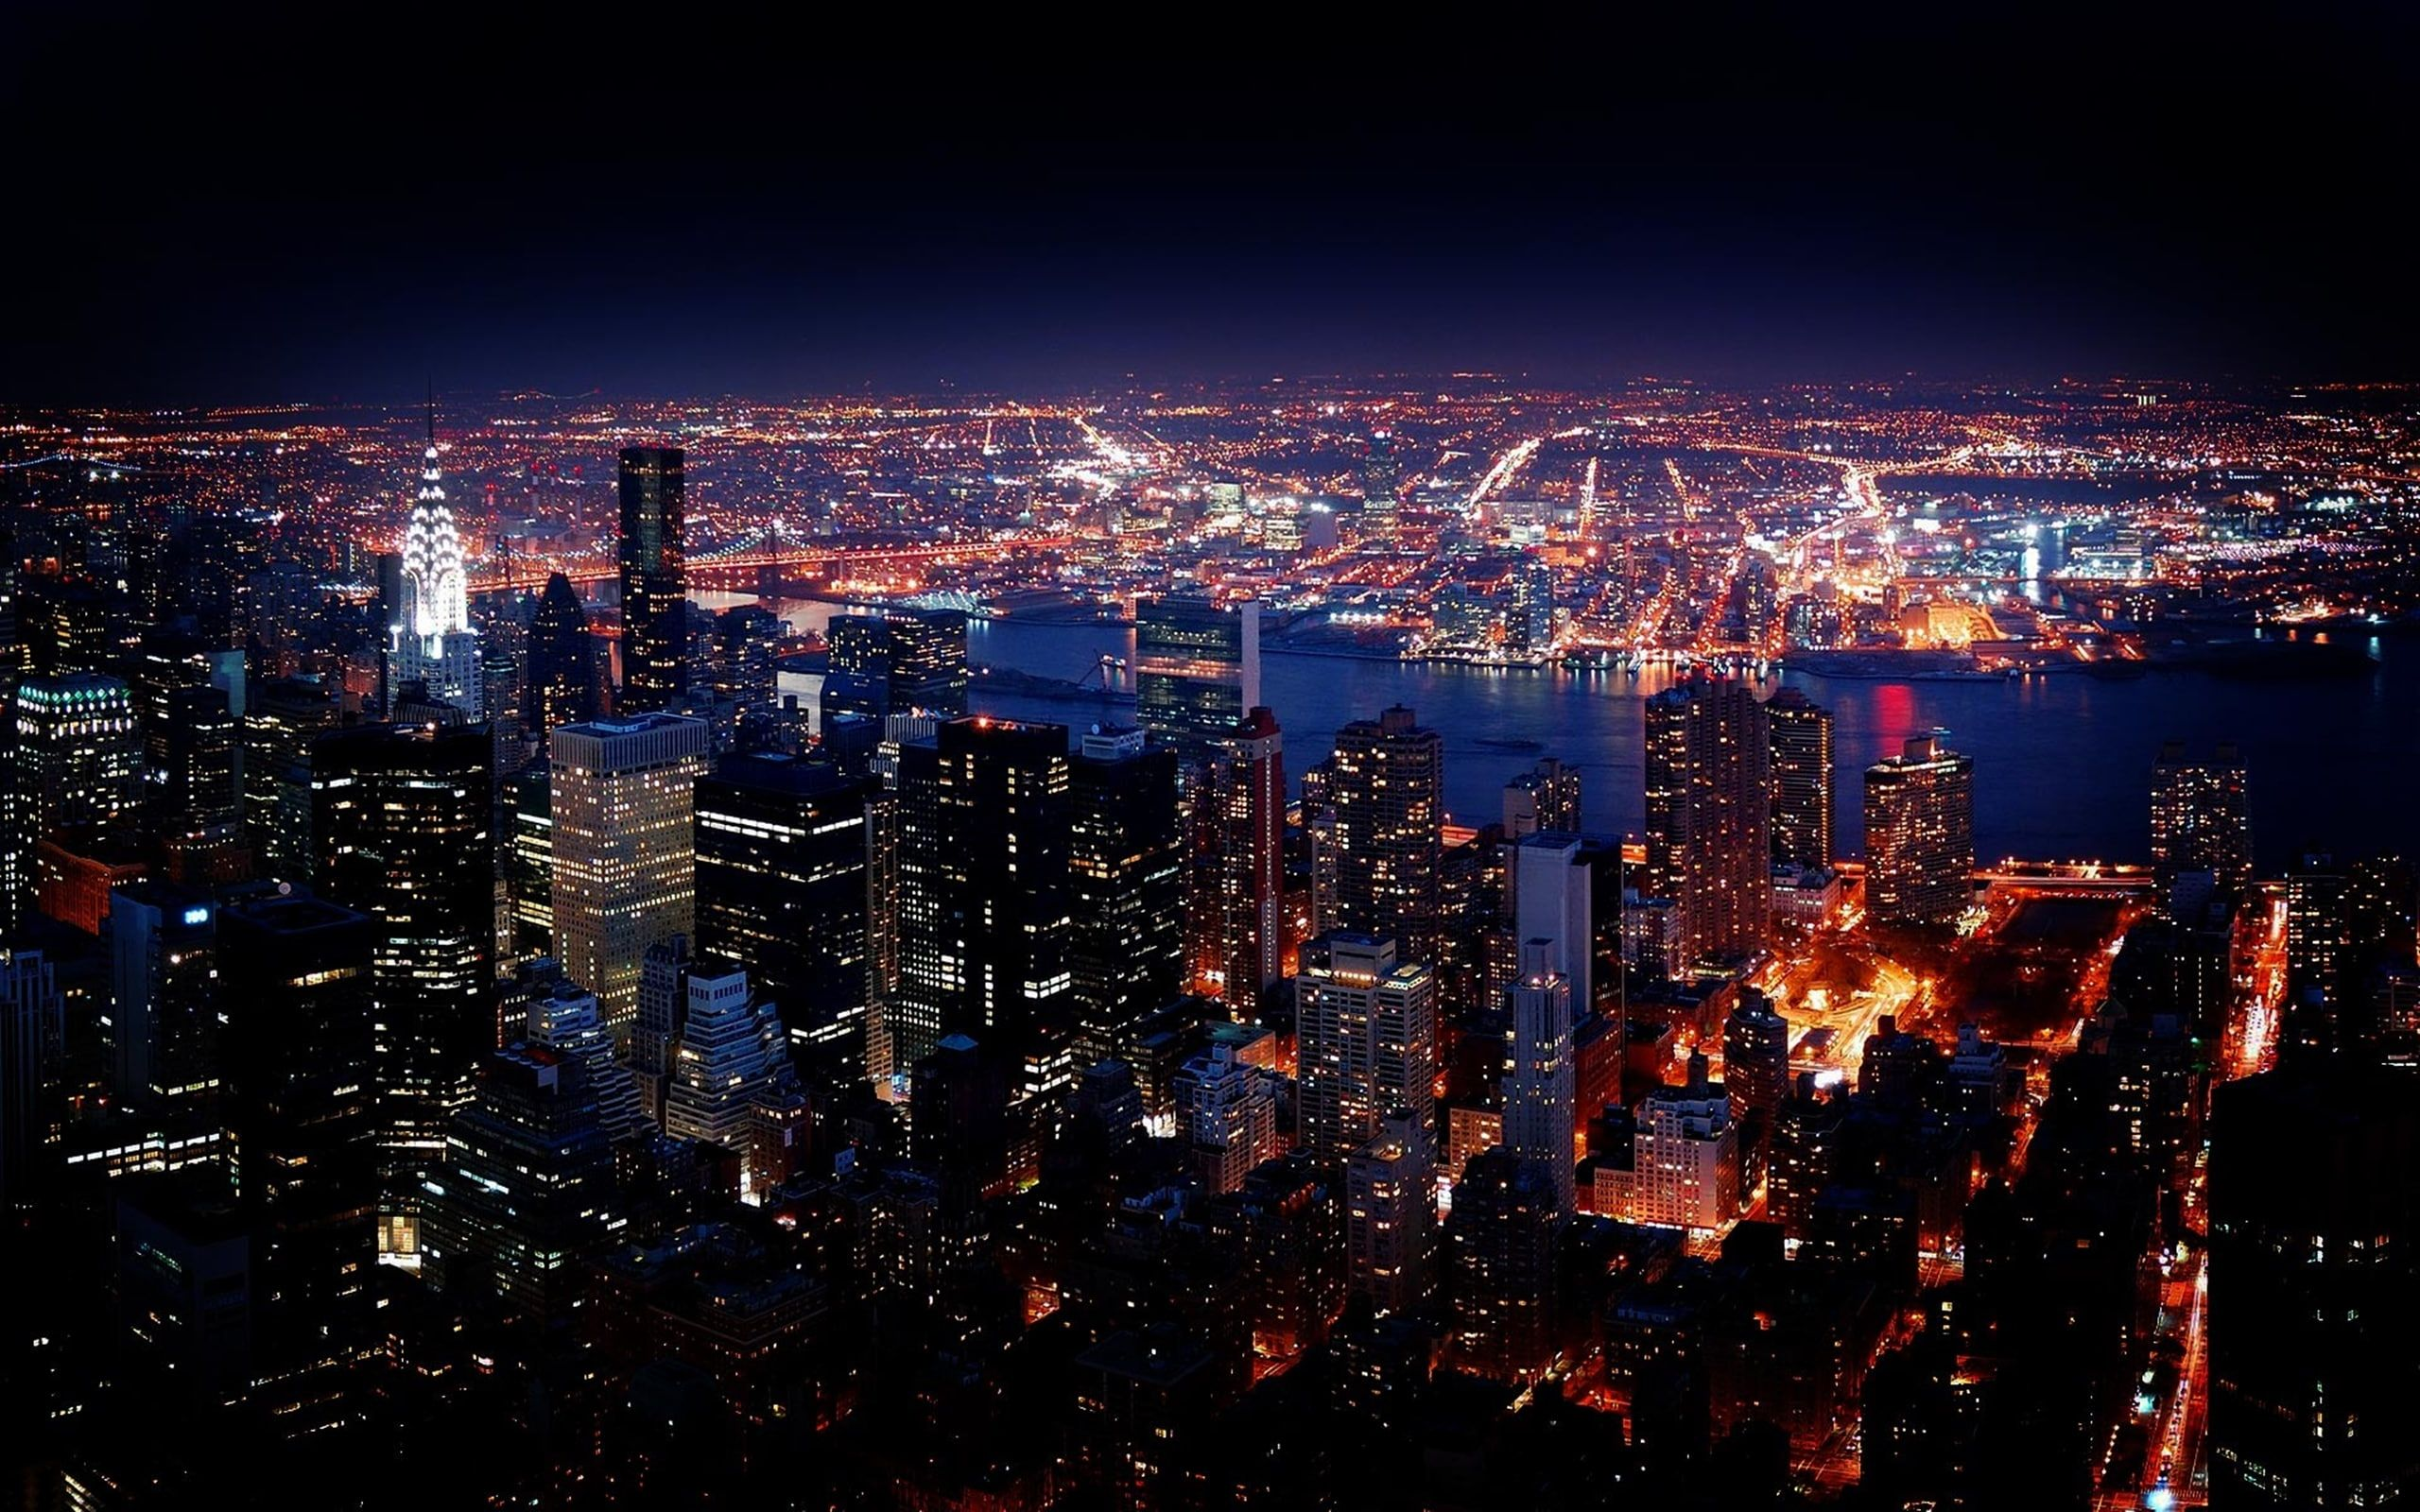 New York City Night View Hd Wallpaper In 2020 New York Wallpaper City Wallpaper Night Skyline